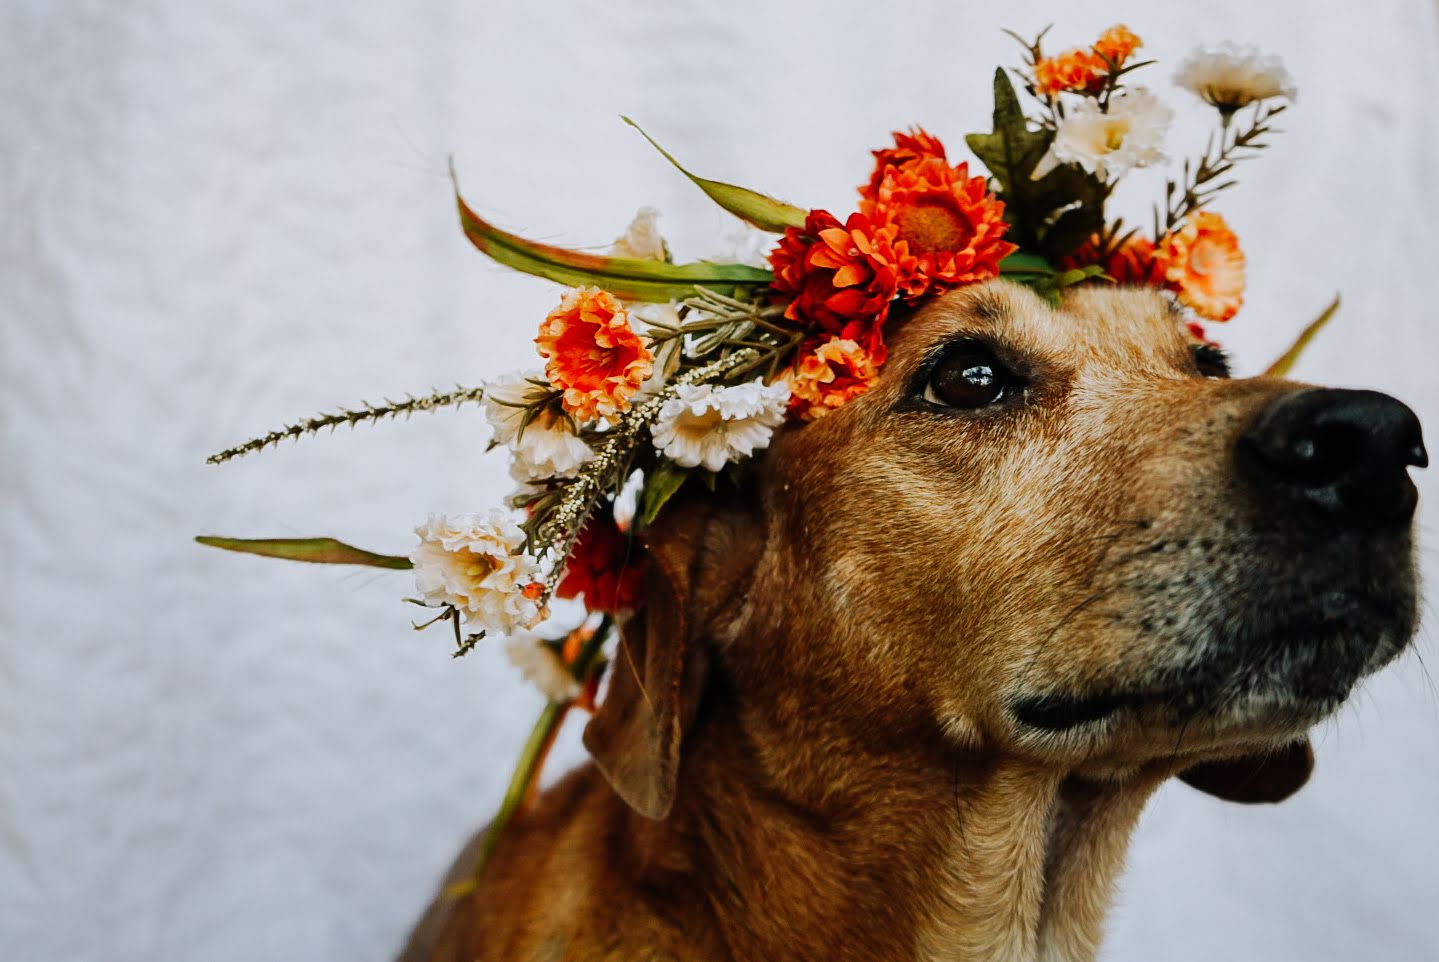 Dog Wearing Flower Crown